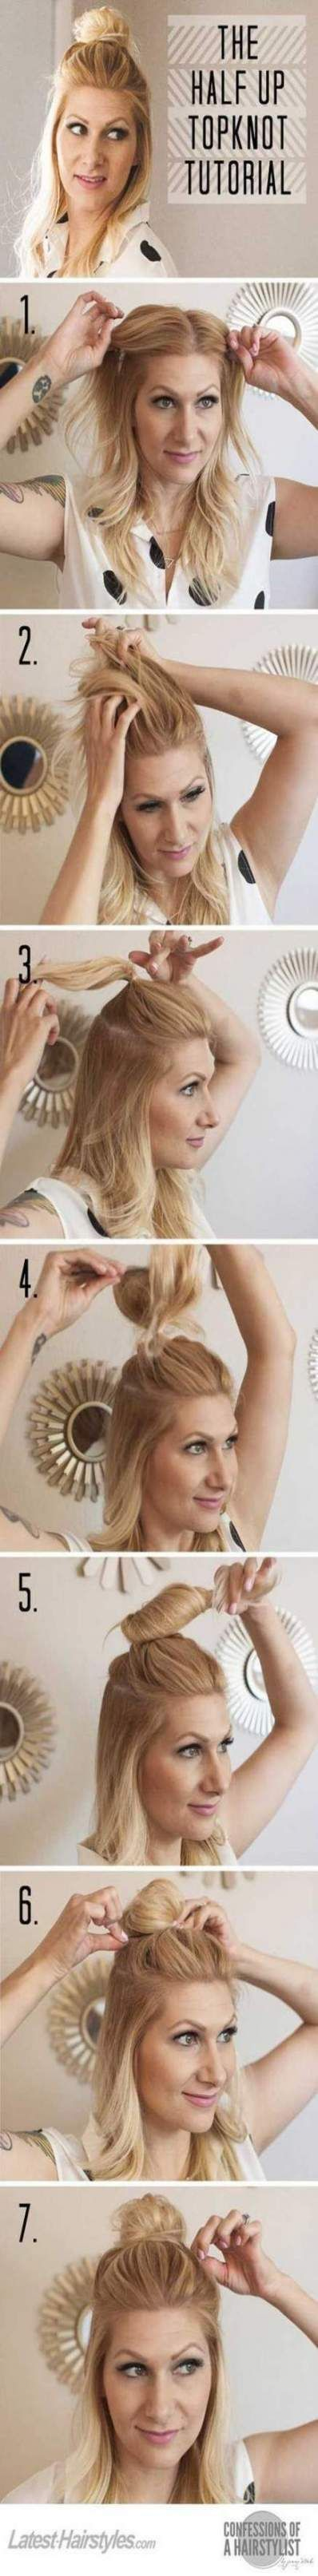 21 ideas for wedding hairstyles half up half down diy tutorials curls,  #curls #DIY #hairstyl...